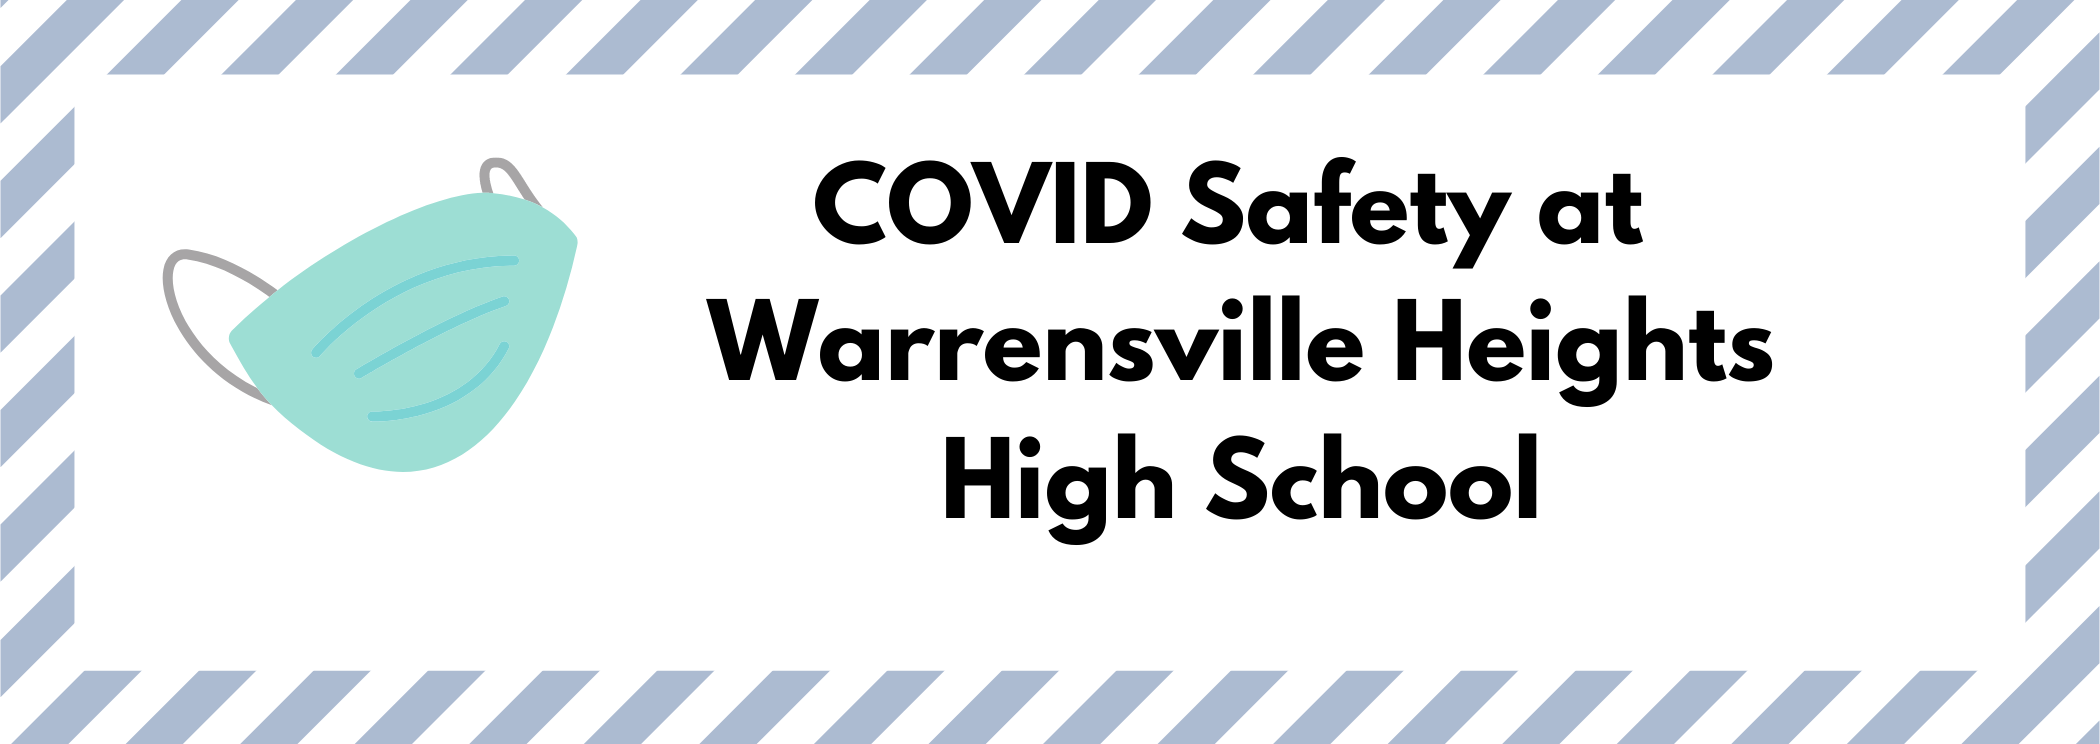 COVID Safety at Warrensville Heights High School